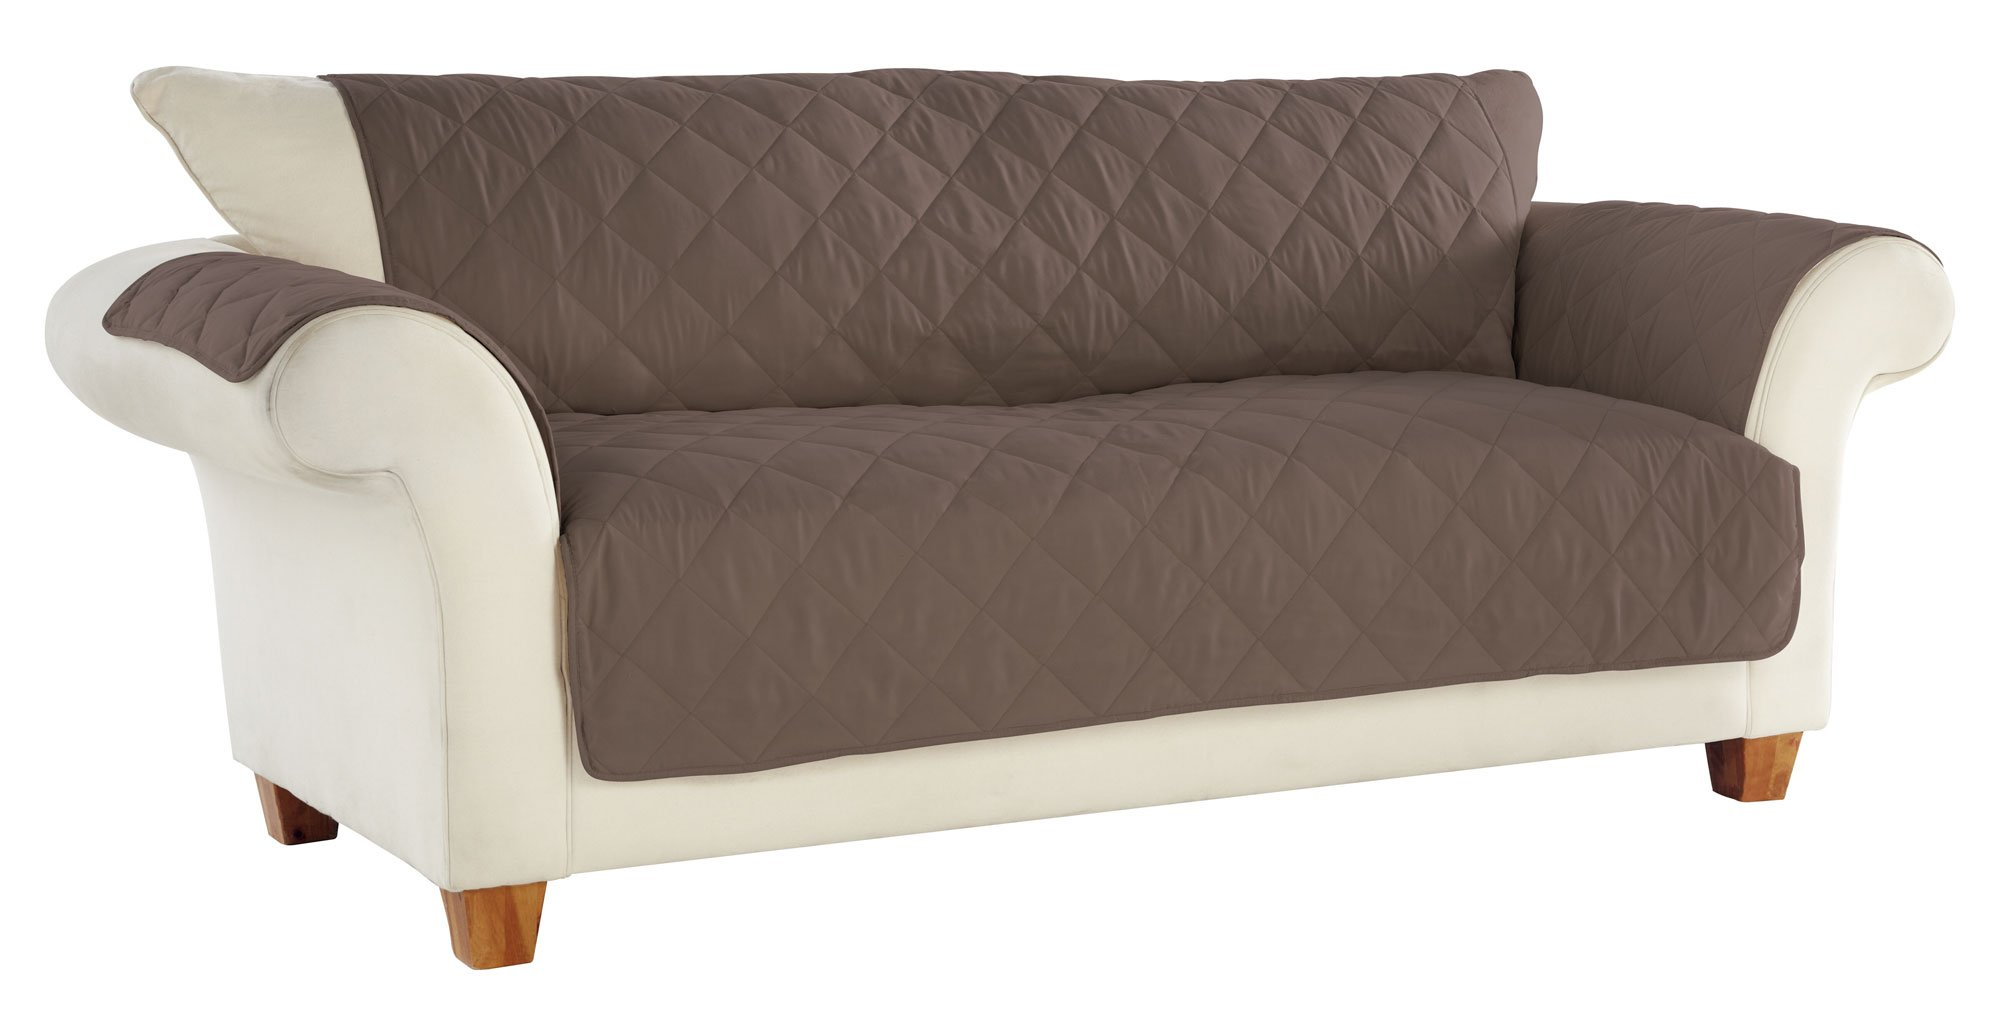 Tailor Fit No Slip Diamond Quilted Furniture Protector for Sofa, Hand Cast Pewter